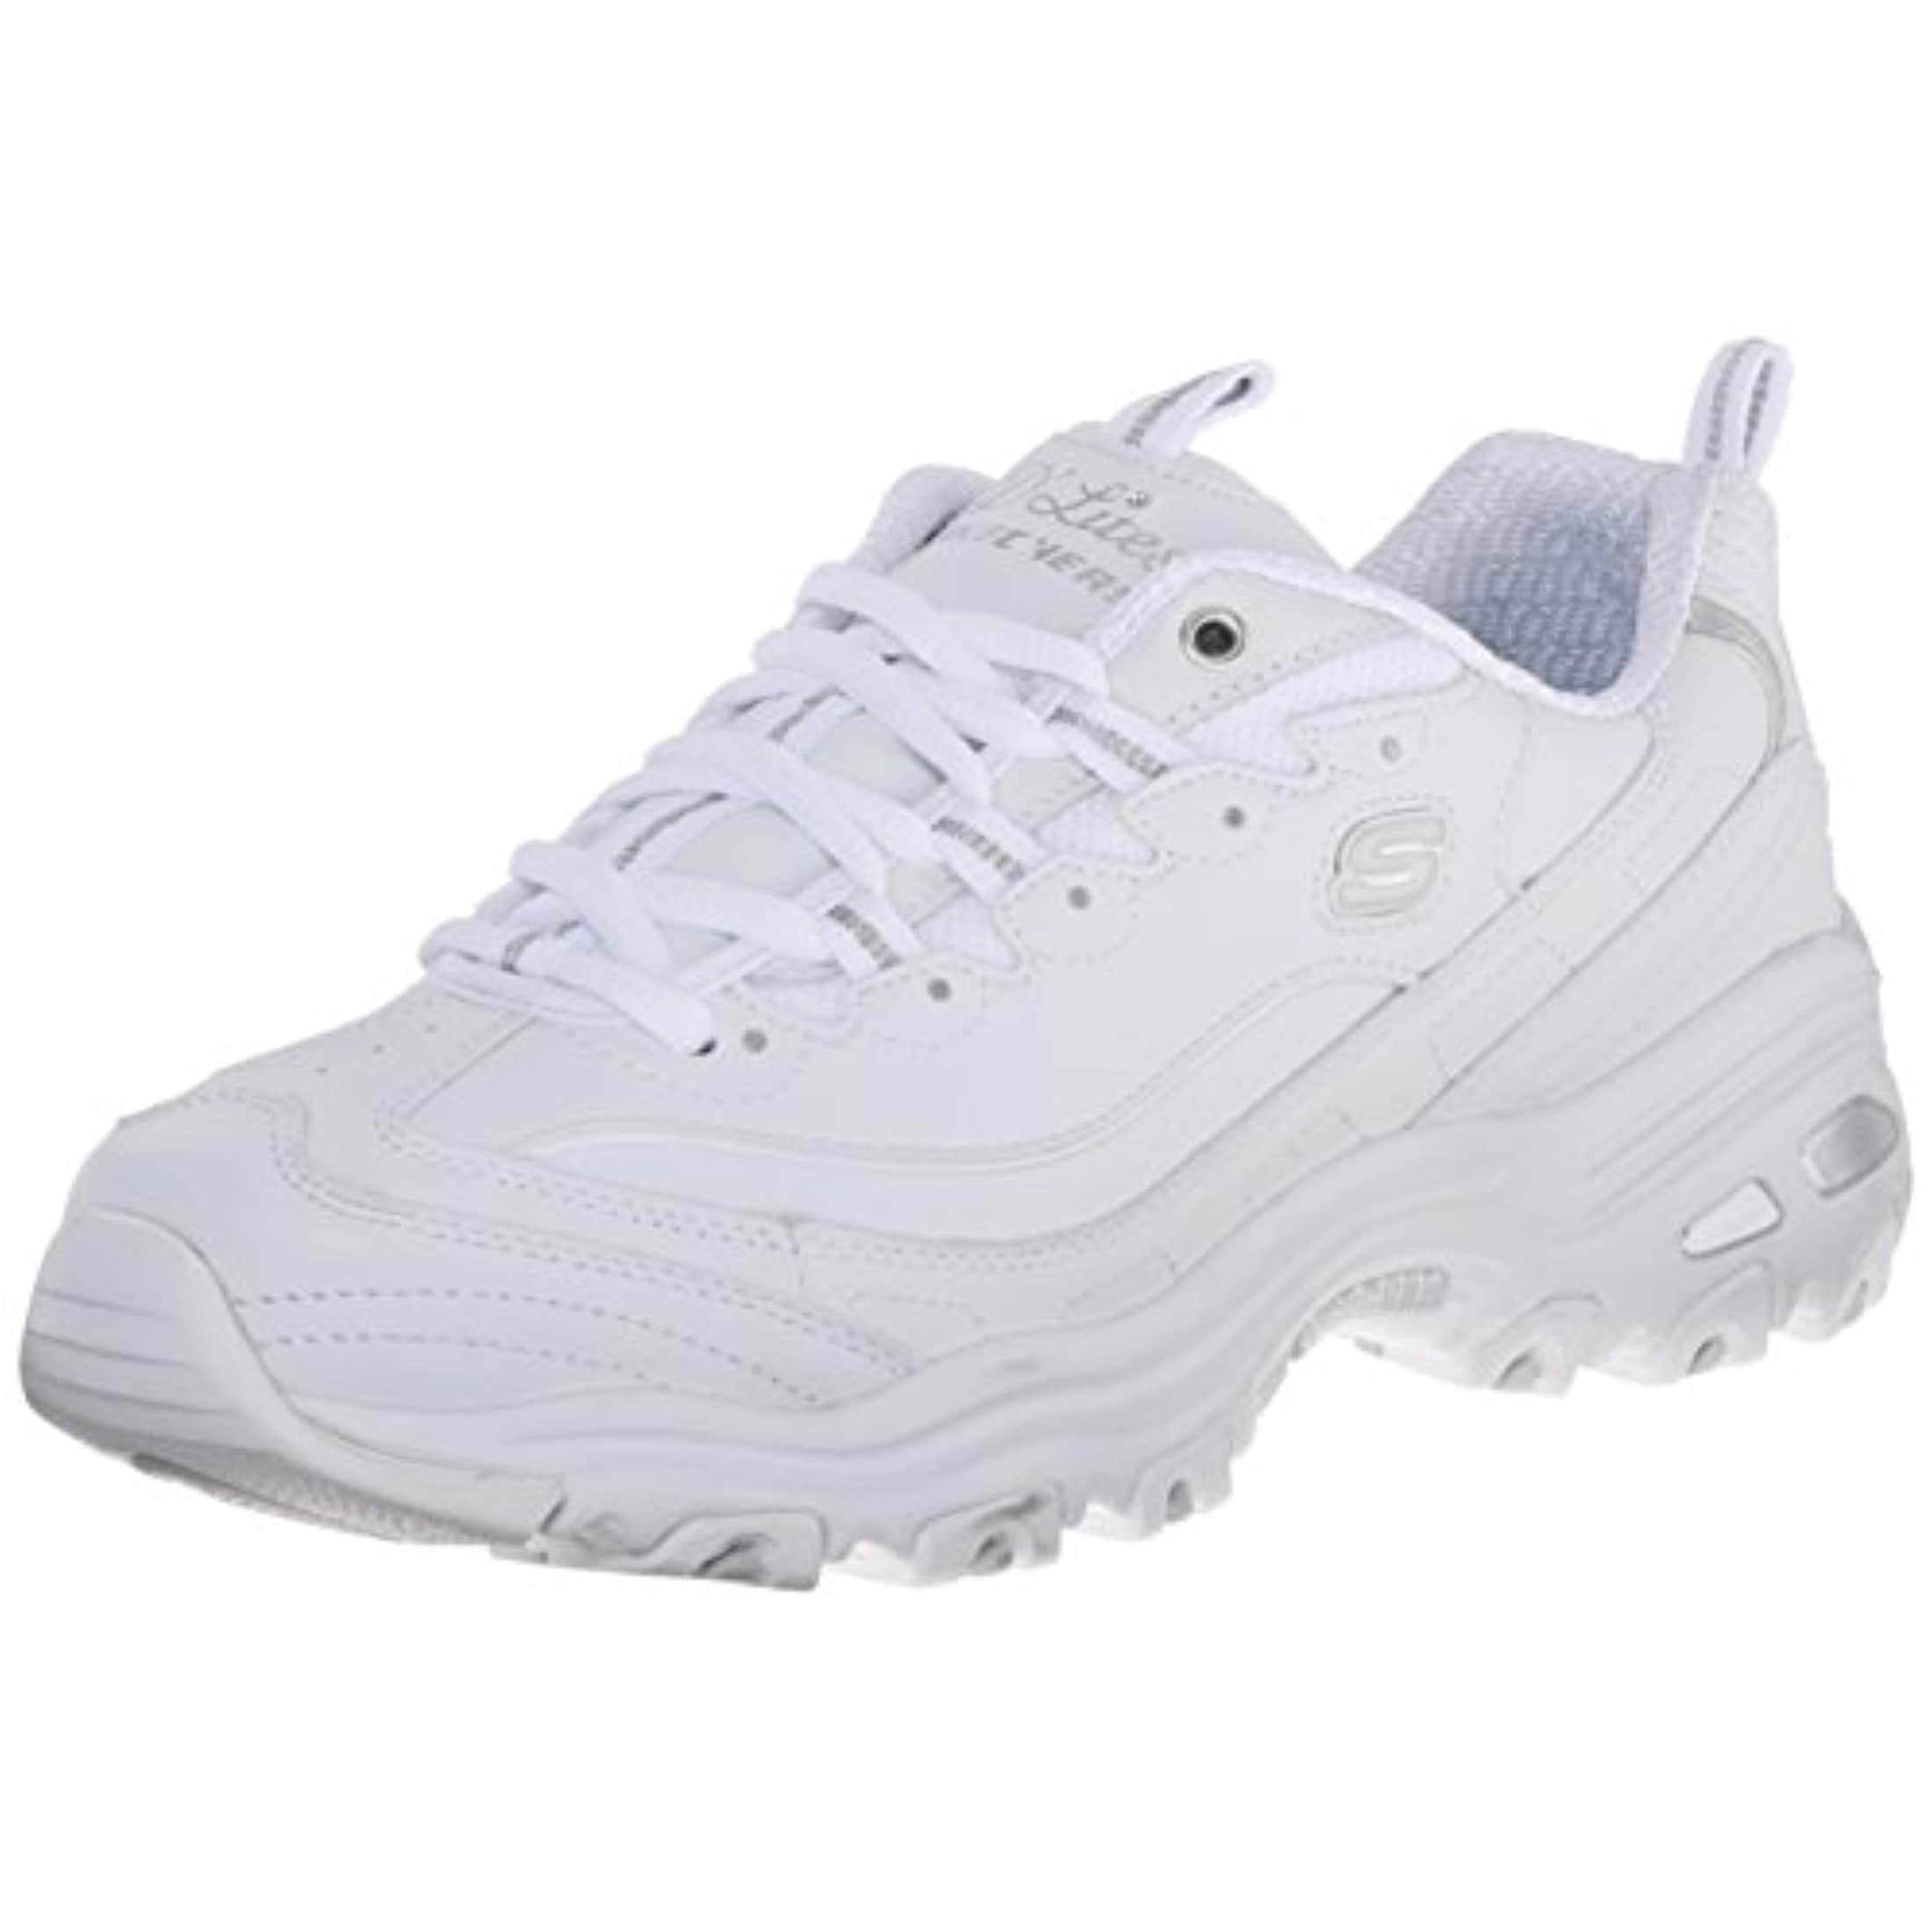 0a6580aa3d30 Shop Skechers Sport Women s D lites Fresh Start Memory Foam Lace-Up Sneaker